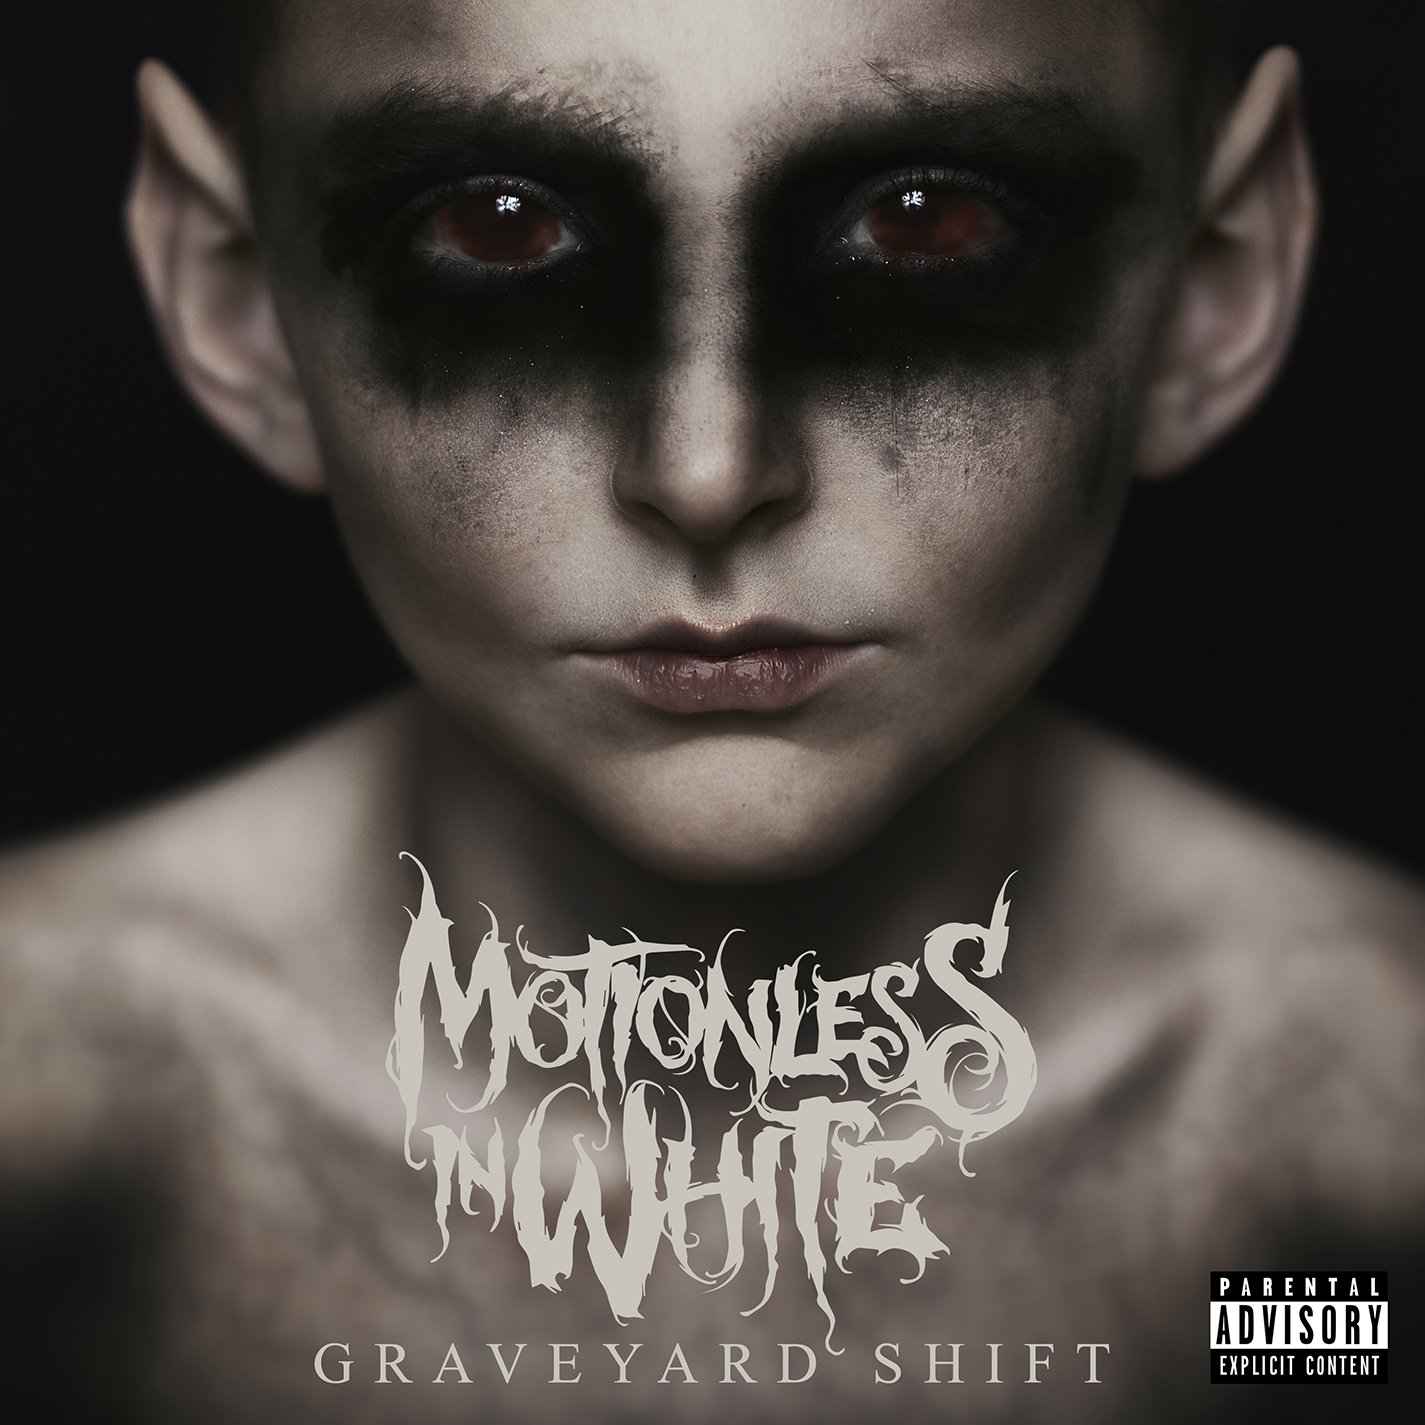 MOTIONLESS IN WHITE - GRAVEYARD SHIFT (CD)